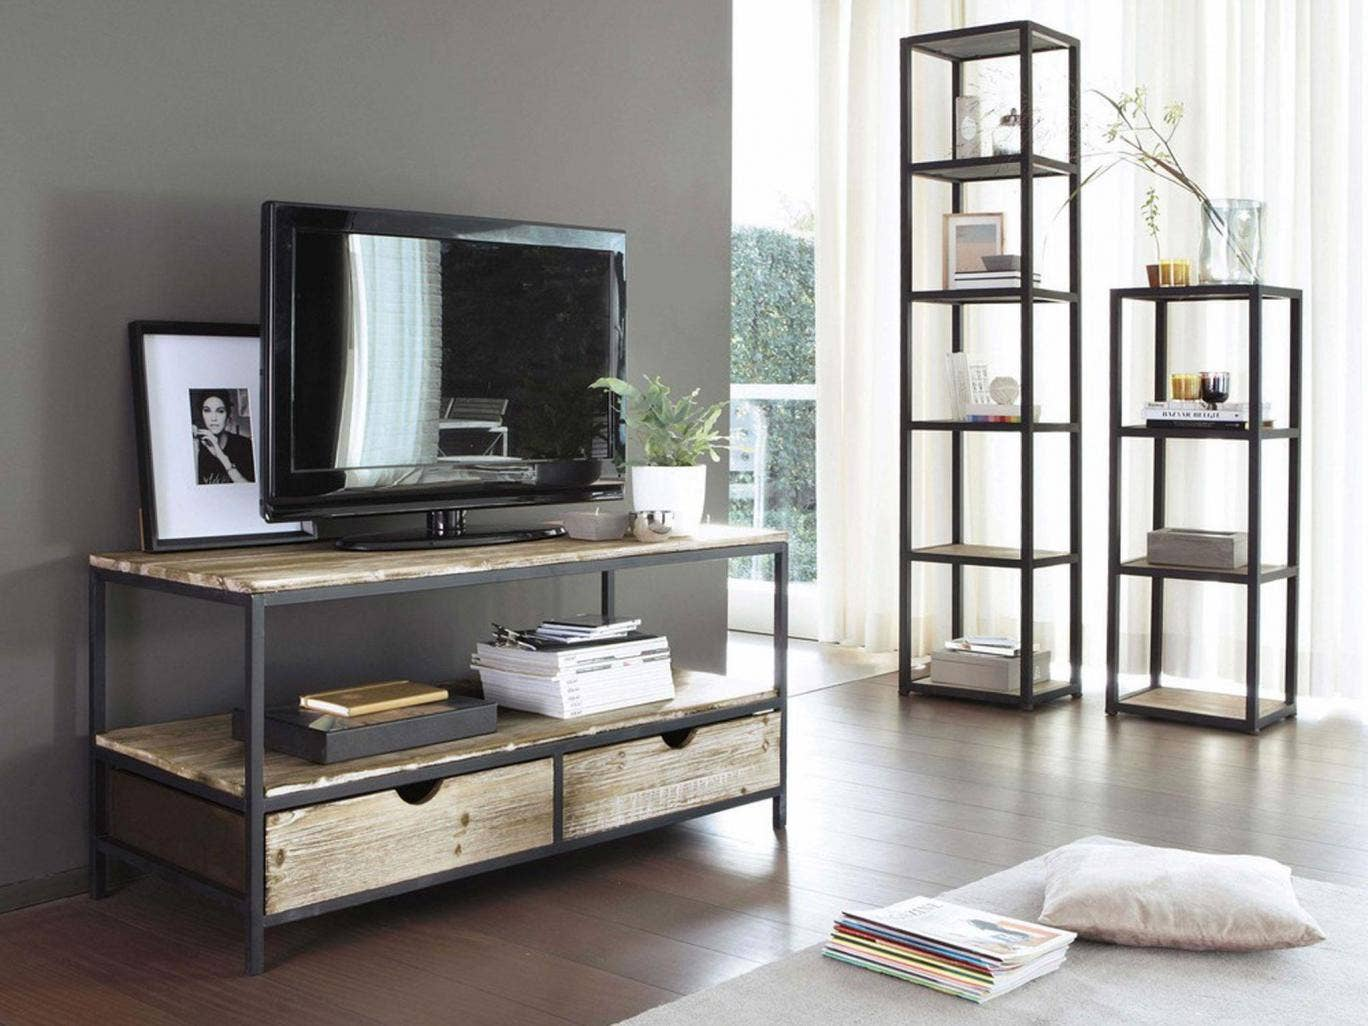 10 Best Tv Stands The Independent Organizer Kit To Solve All Your Flat Panel Wiring Problems